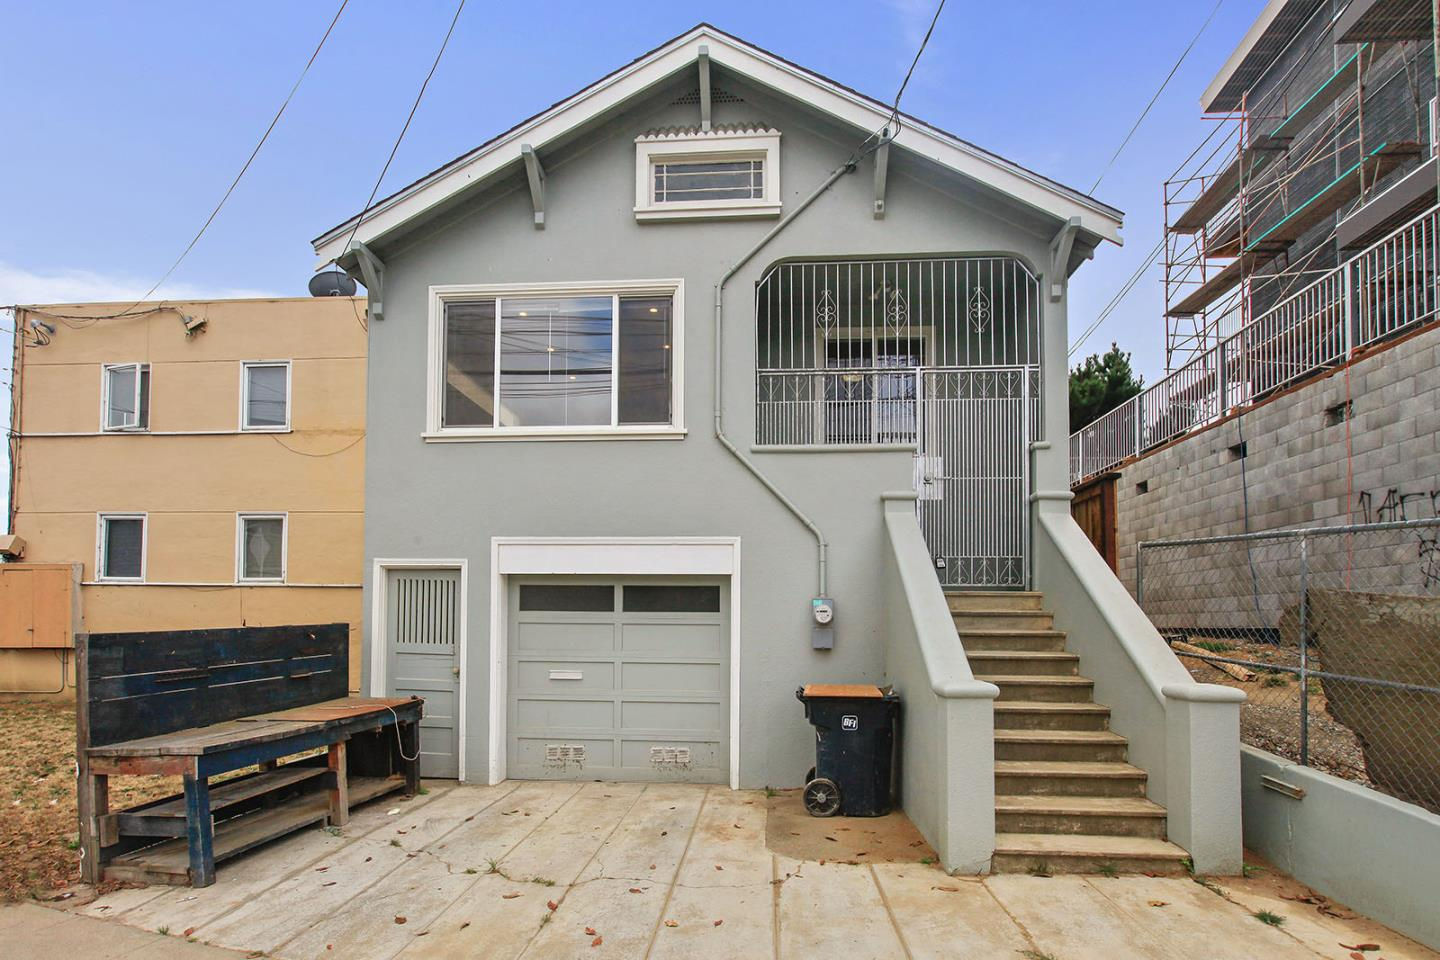 Multi-Family Home for Sale at 243 Armour Avenue 243 Armour Avenue South San Francisco, California 94080 United States